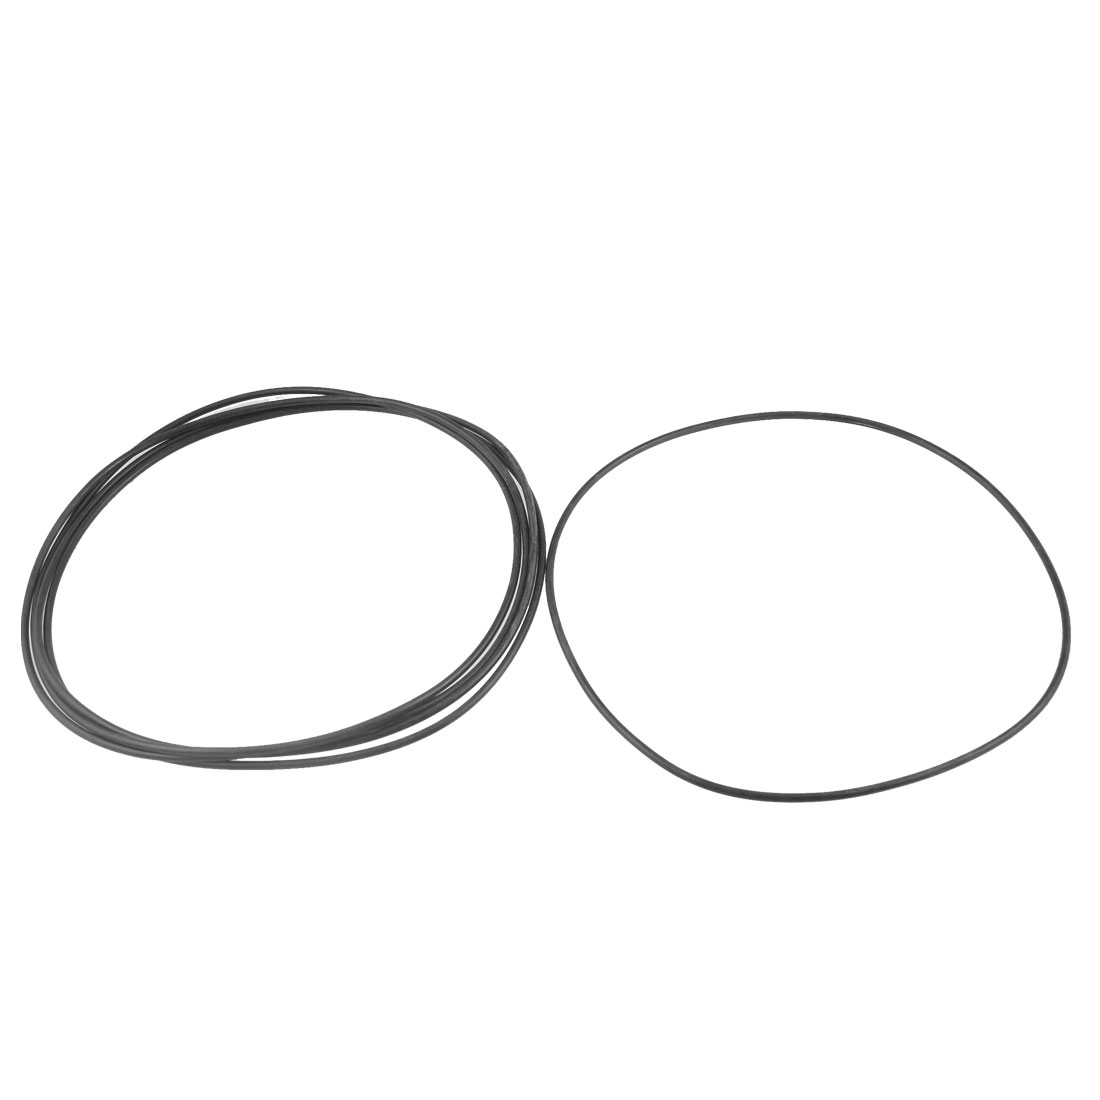 180mm x 3.1mm Rubber Sealing Oil Filter O Rings Gaskets Washer 5 Pcs